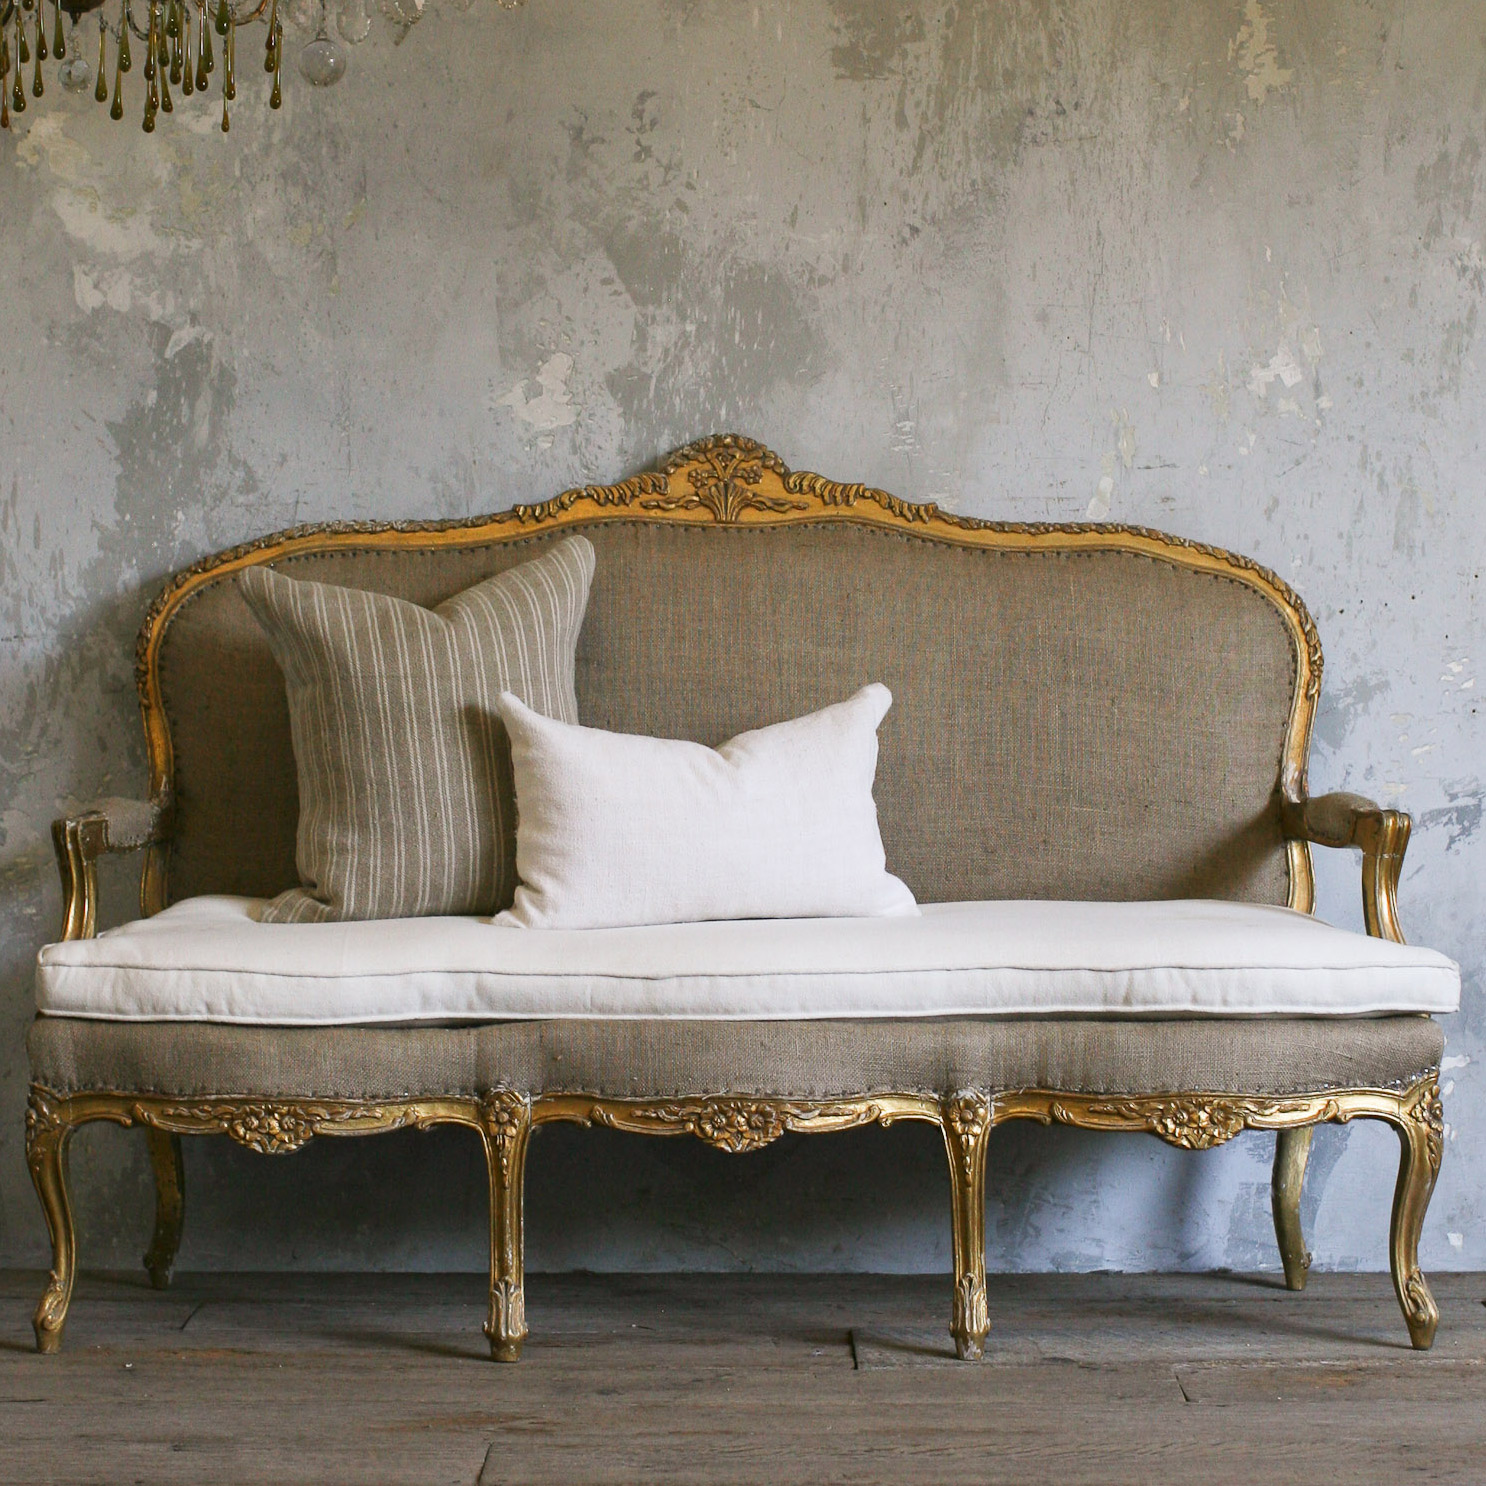 Best of antique couch sofa and settee styles bring back the good old days 14 best of Antique loveseat styles